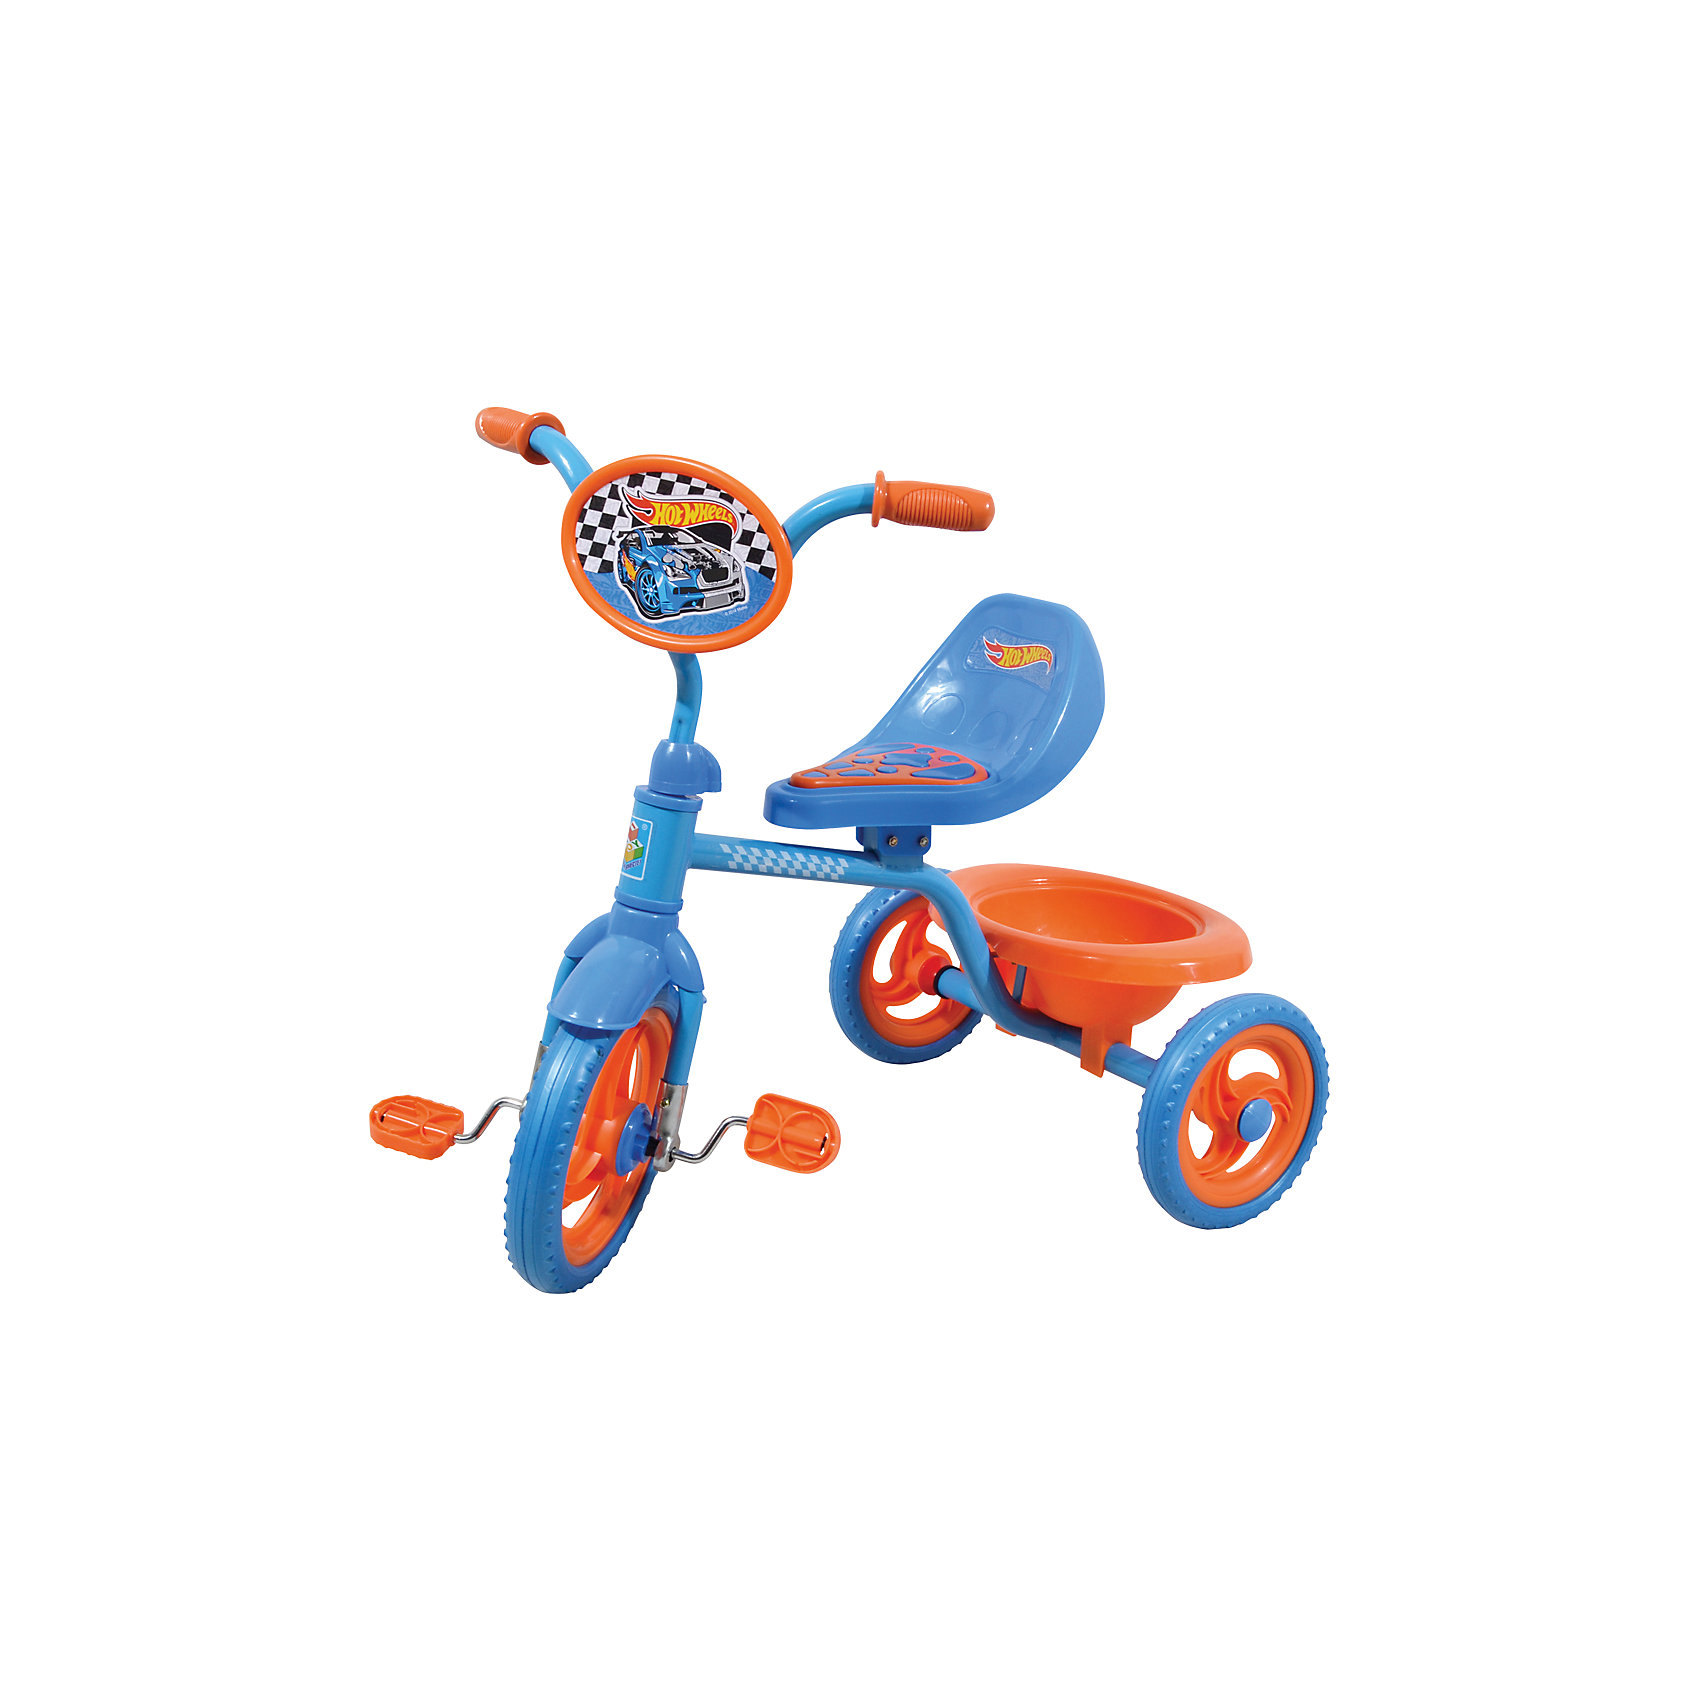 ��������� ������������ Hot Wheels, 1Toy